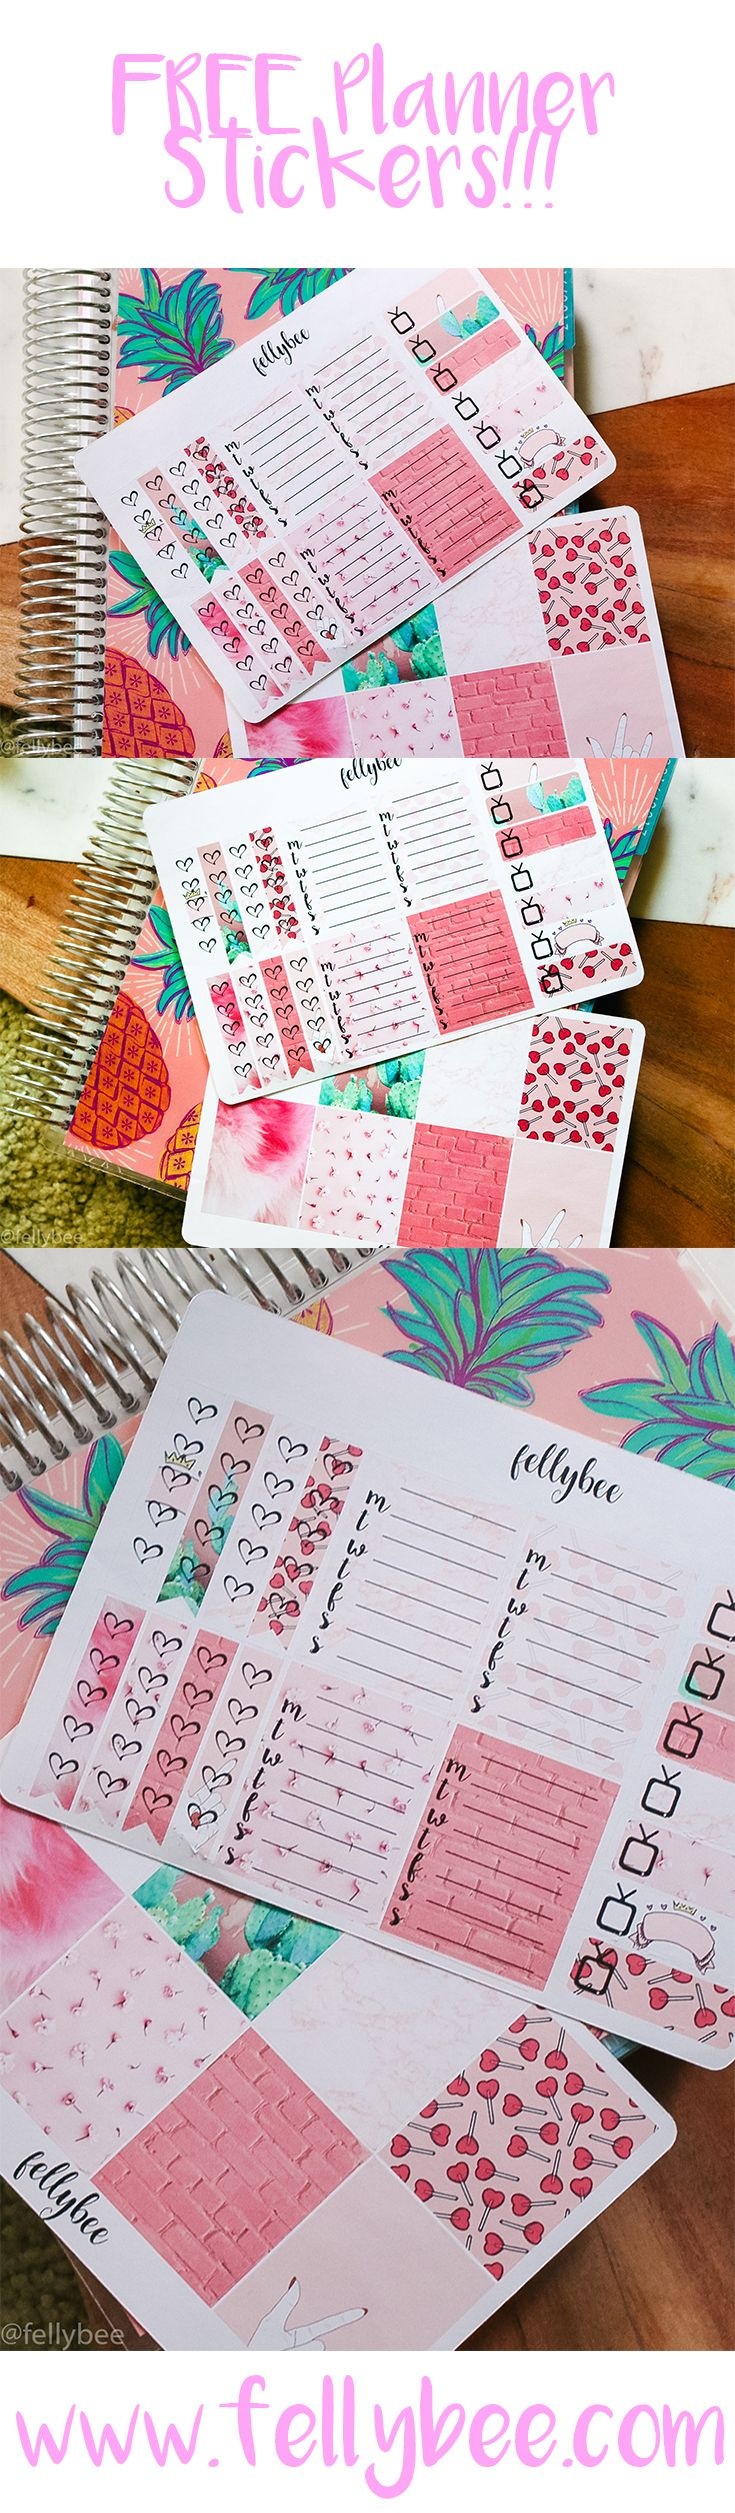 Free Planner Stickers {newsletter subscription required}